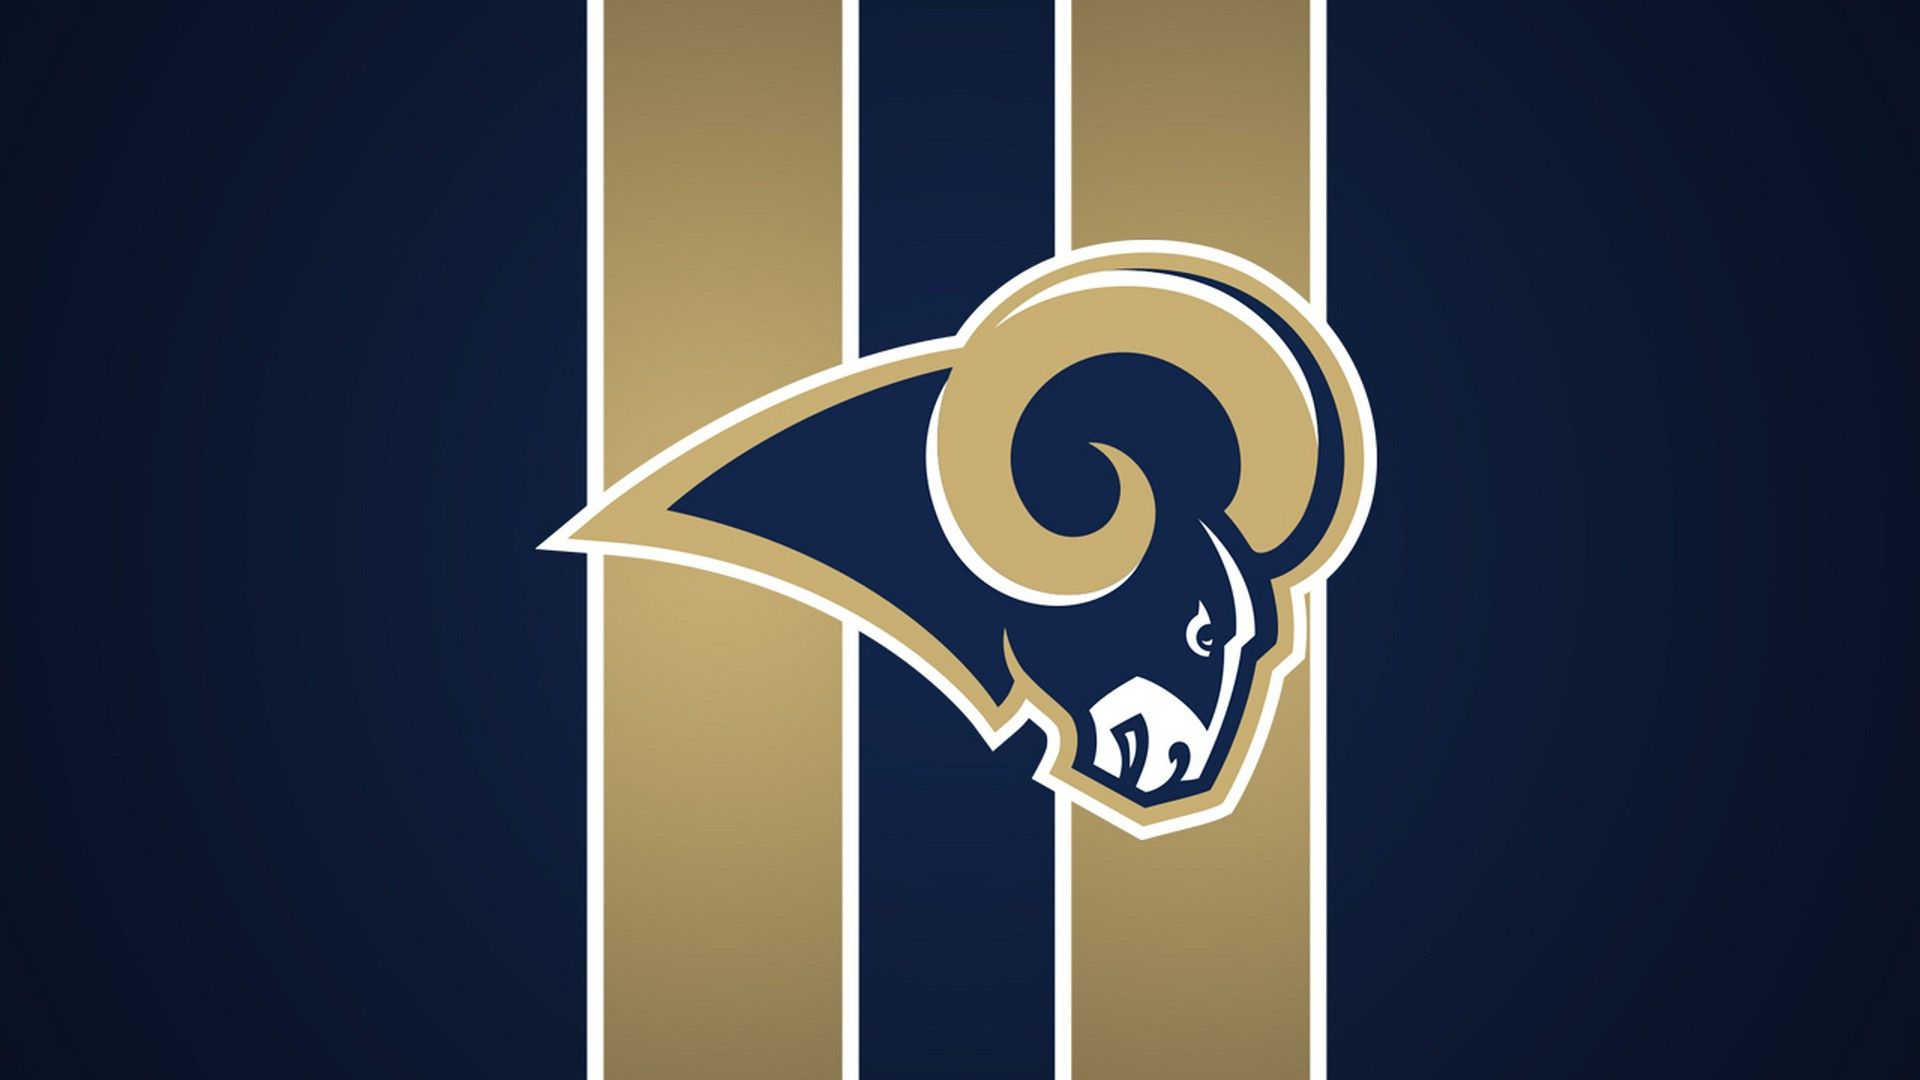 Los Angeles Rams For Mac 2021 Nfl Football Wallpapers St Louis Rams Los Angeles Rams Ram Wallpaper